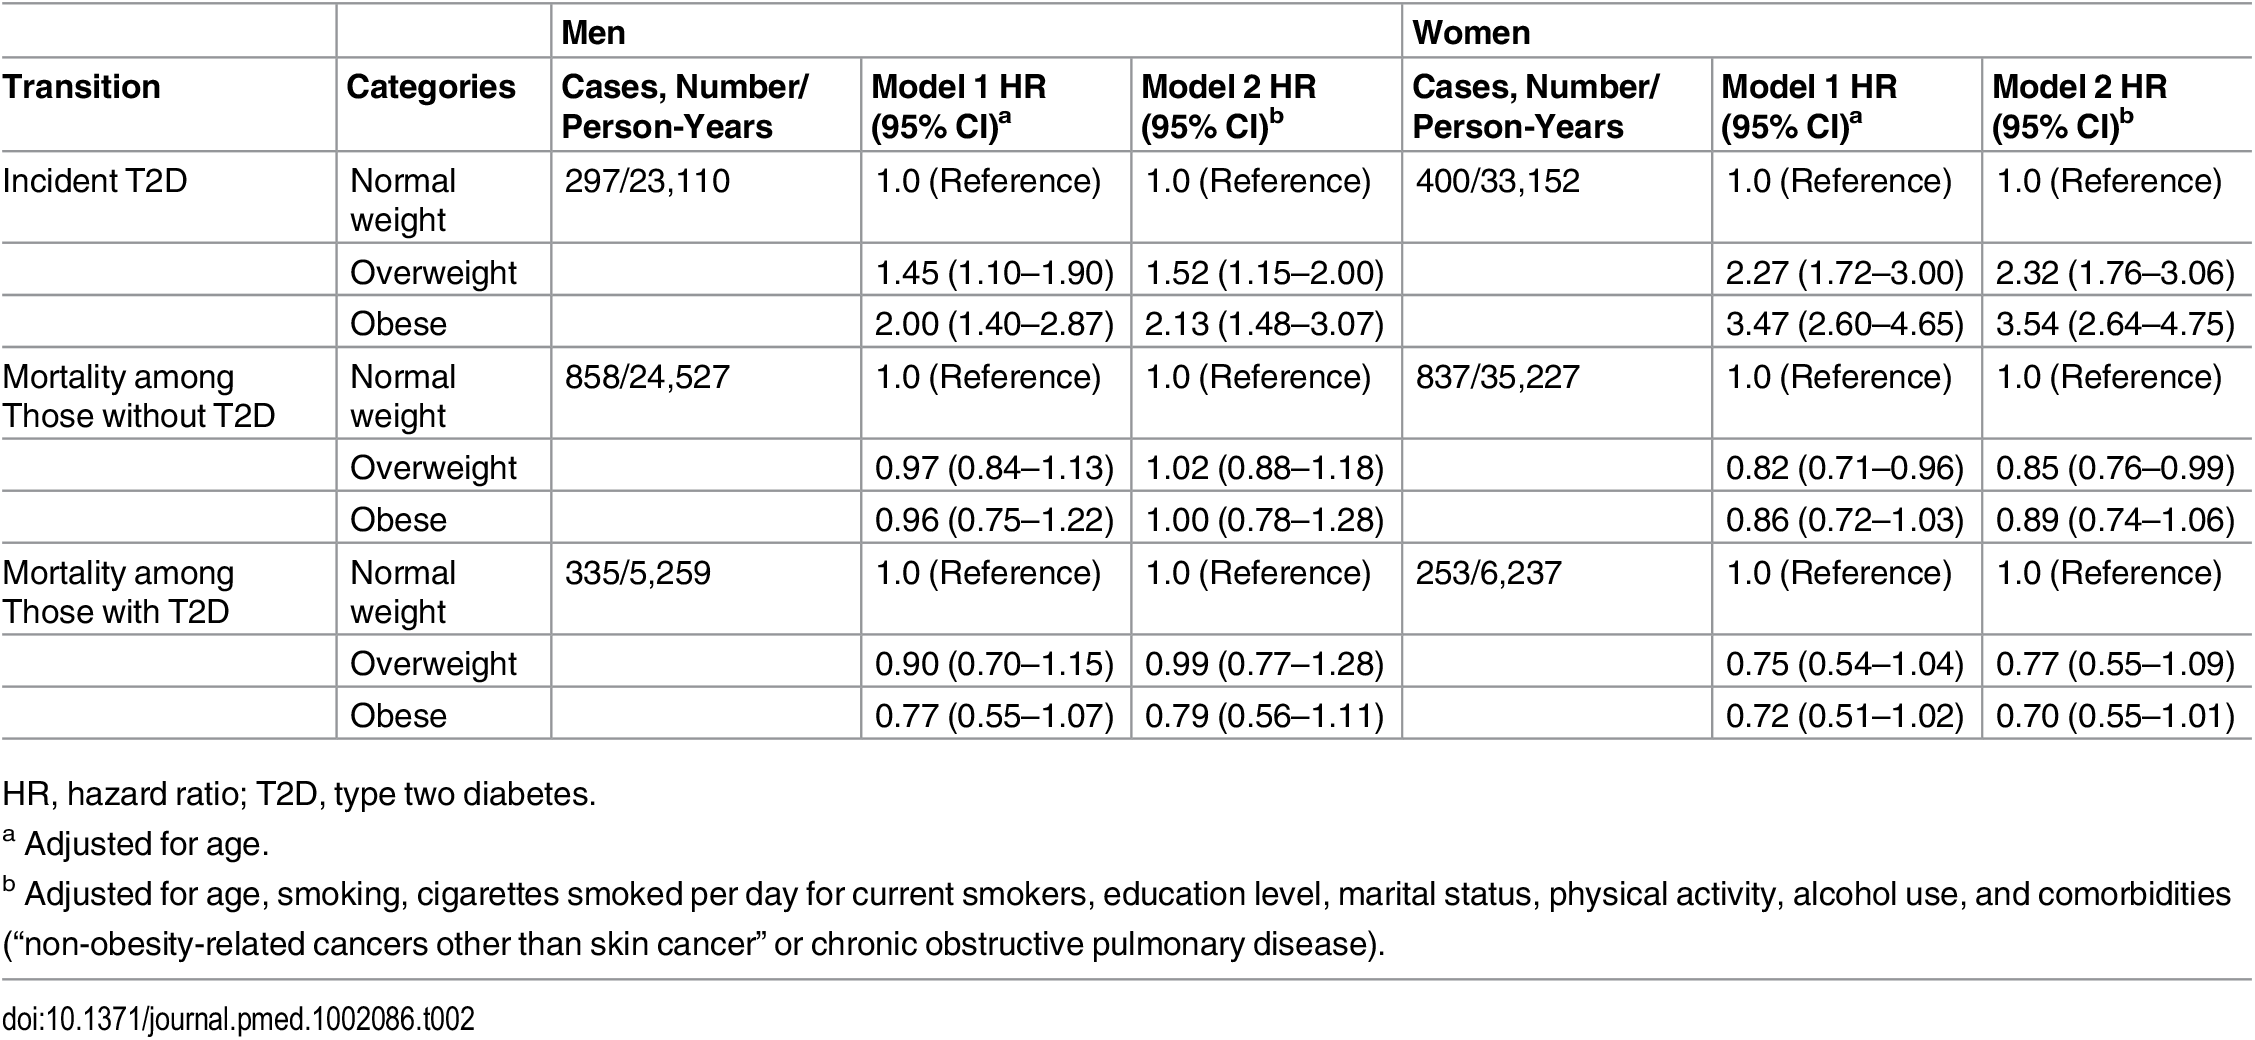 Hazard ratios for incidence diabetes and death in overweight and obese men and women.